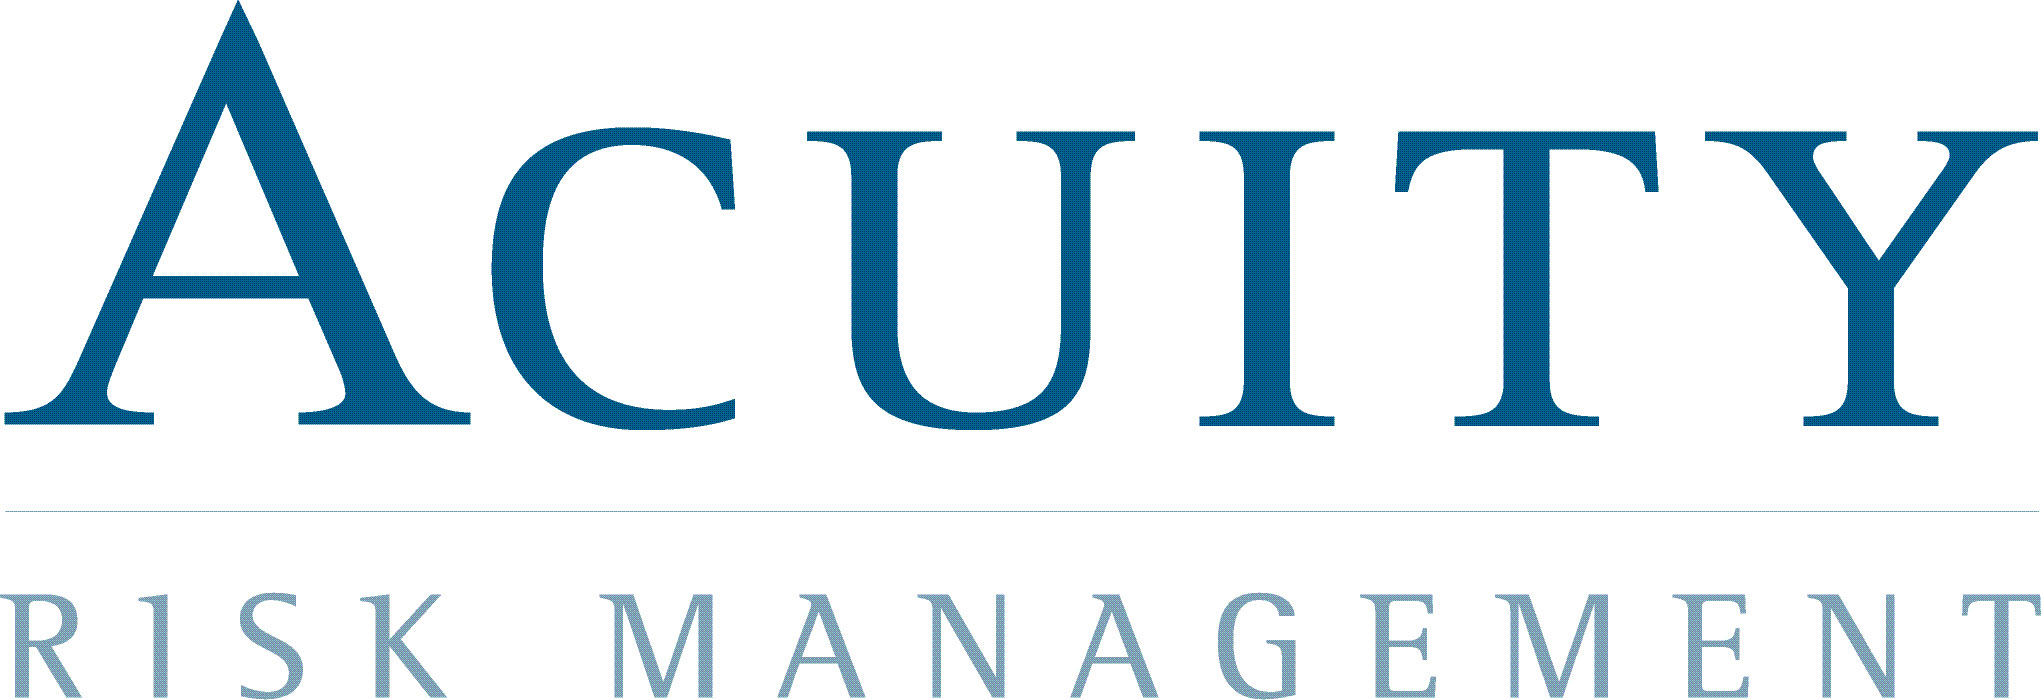 Cyber Risk Innovator Acuity Advances Business Continuity, Risk Management and Compliance with New STREAM Release.